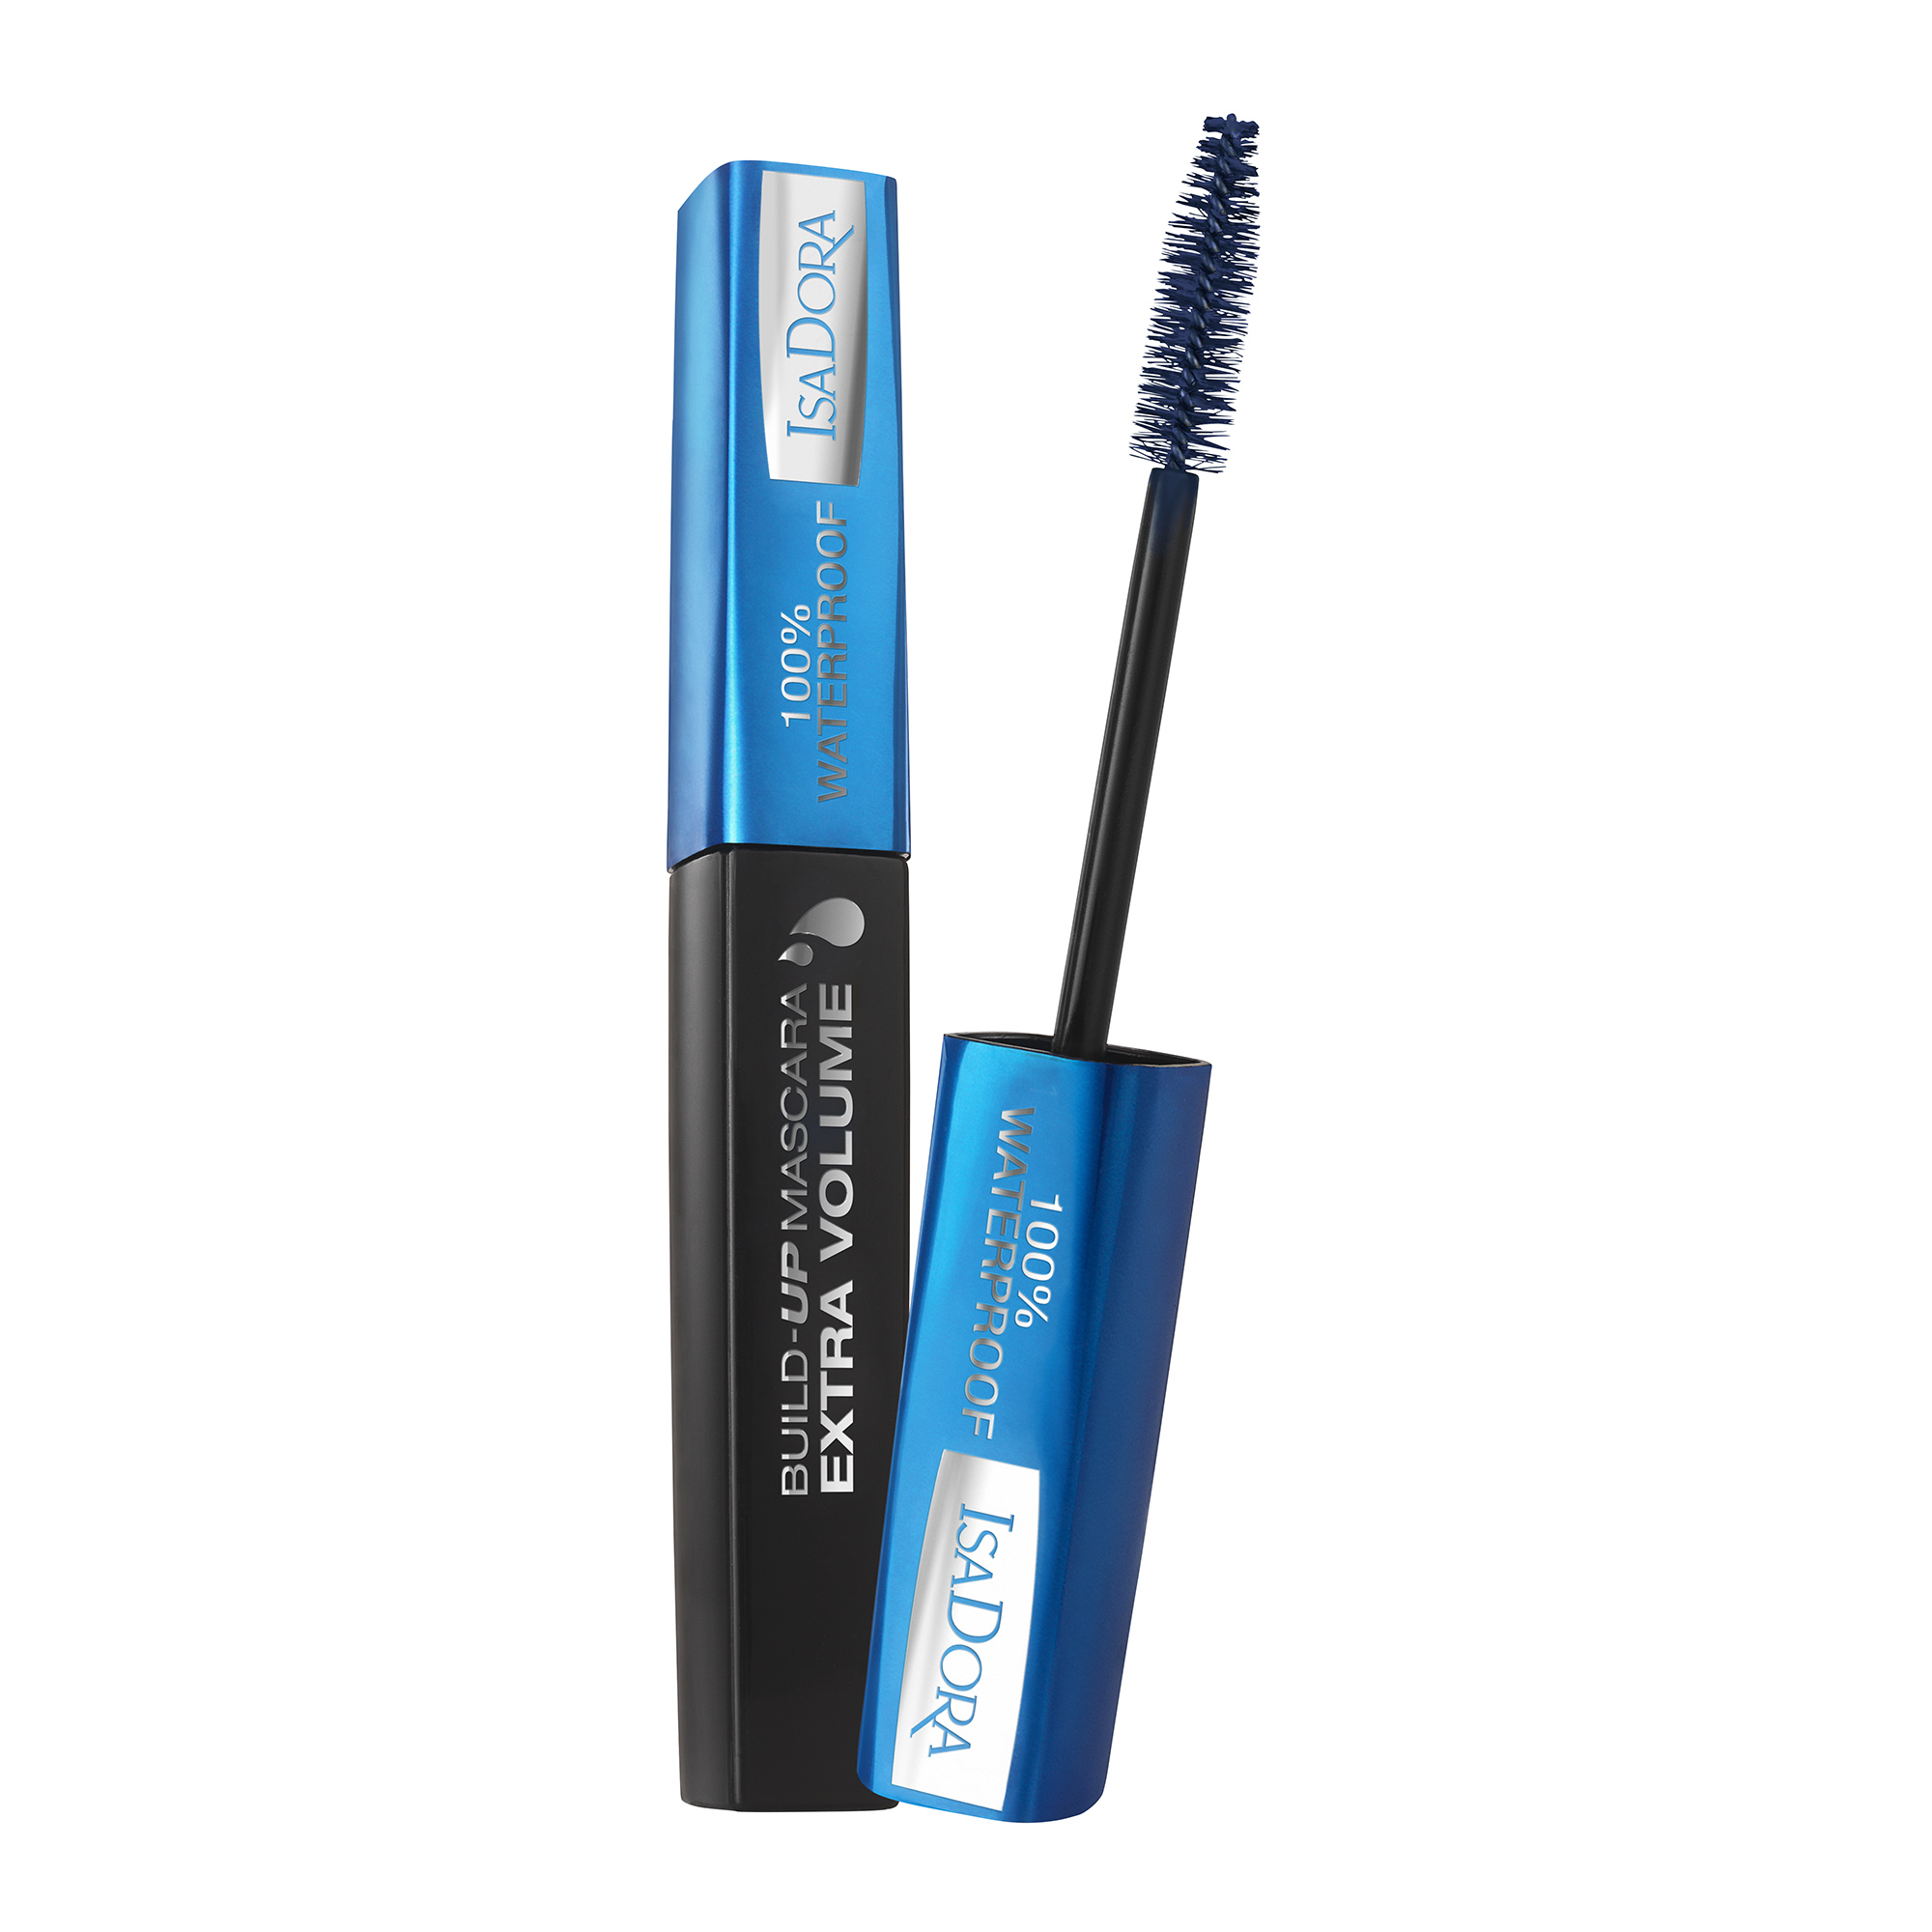 Build-up Mascara Extra Volume 100% Waterproof